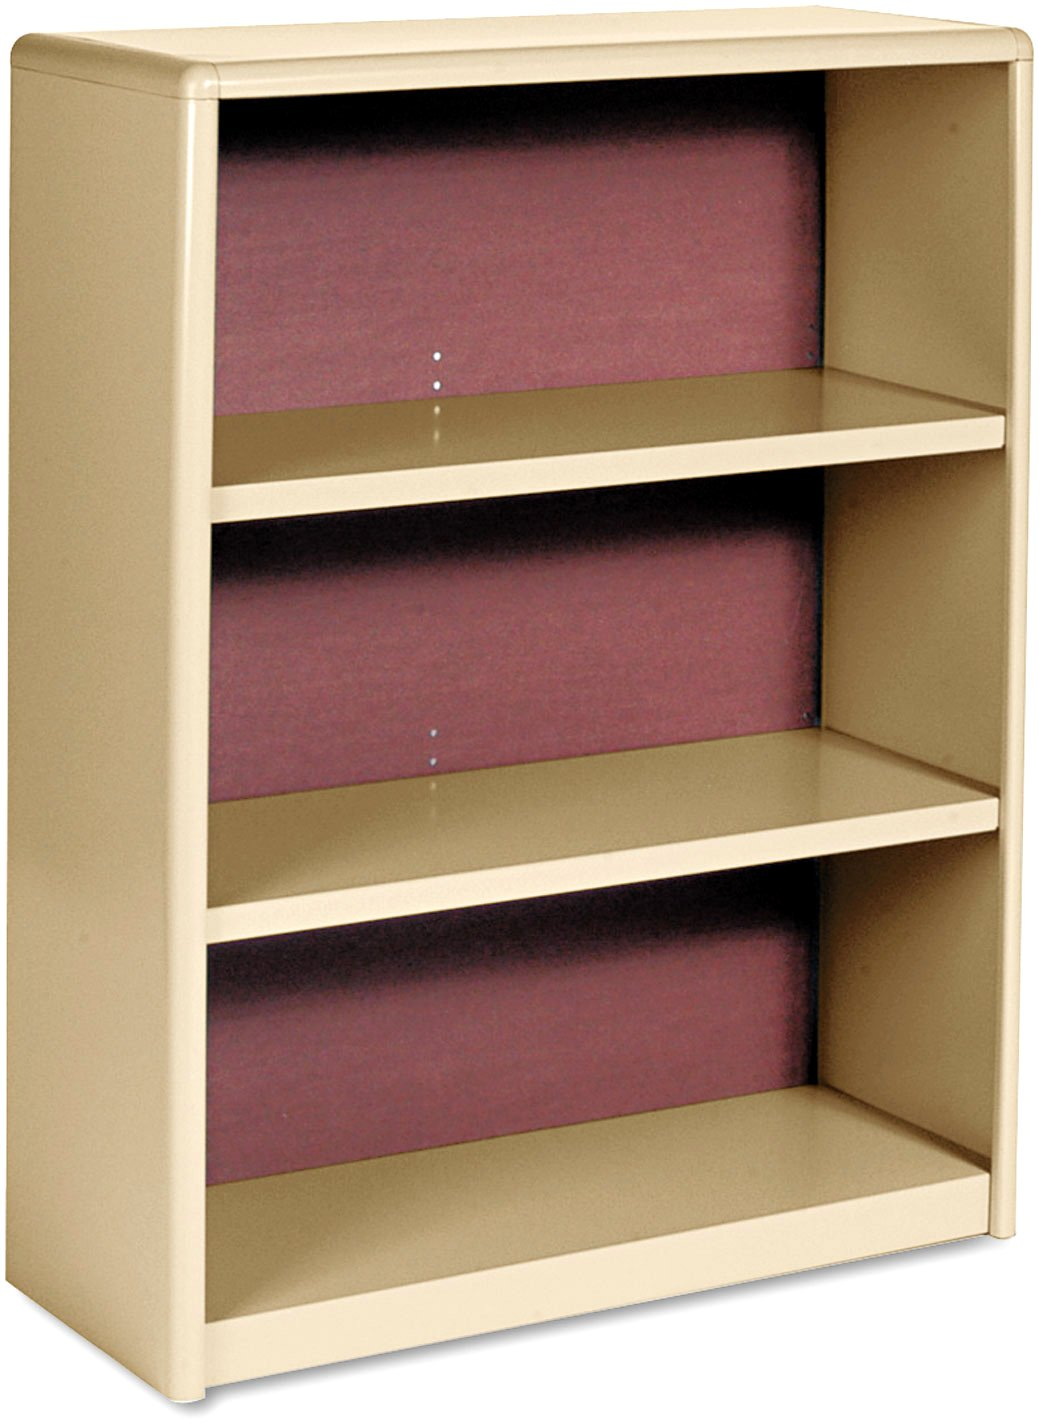 Safco Products 3-Shelf ValueMate® Economy Bookcase Tropic Sand, 7171SA DOBA-SAF7171SA